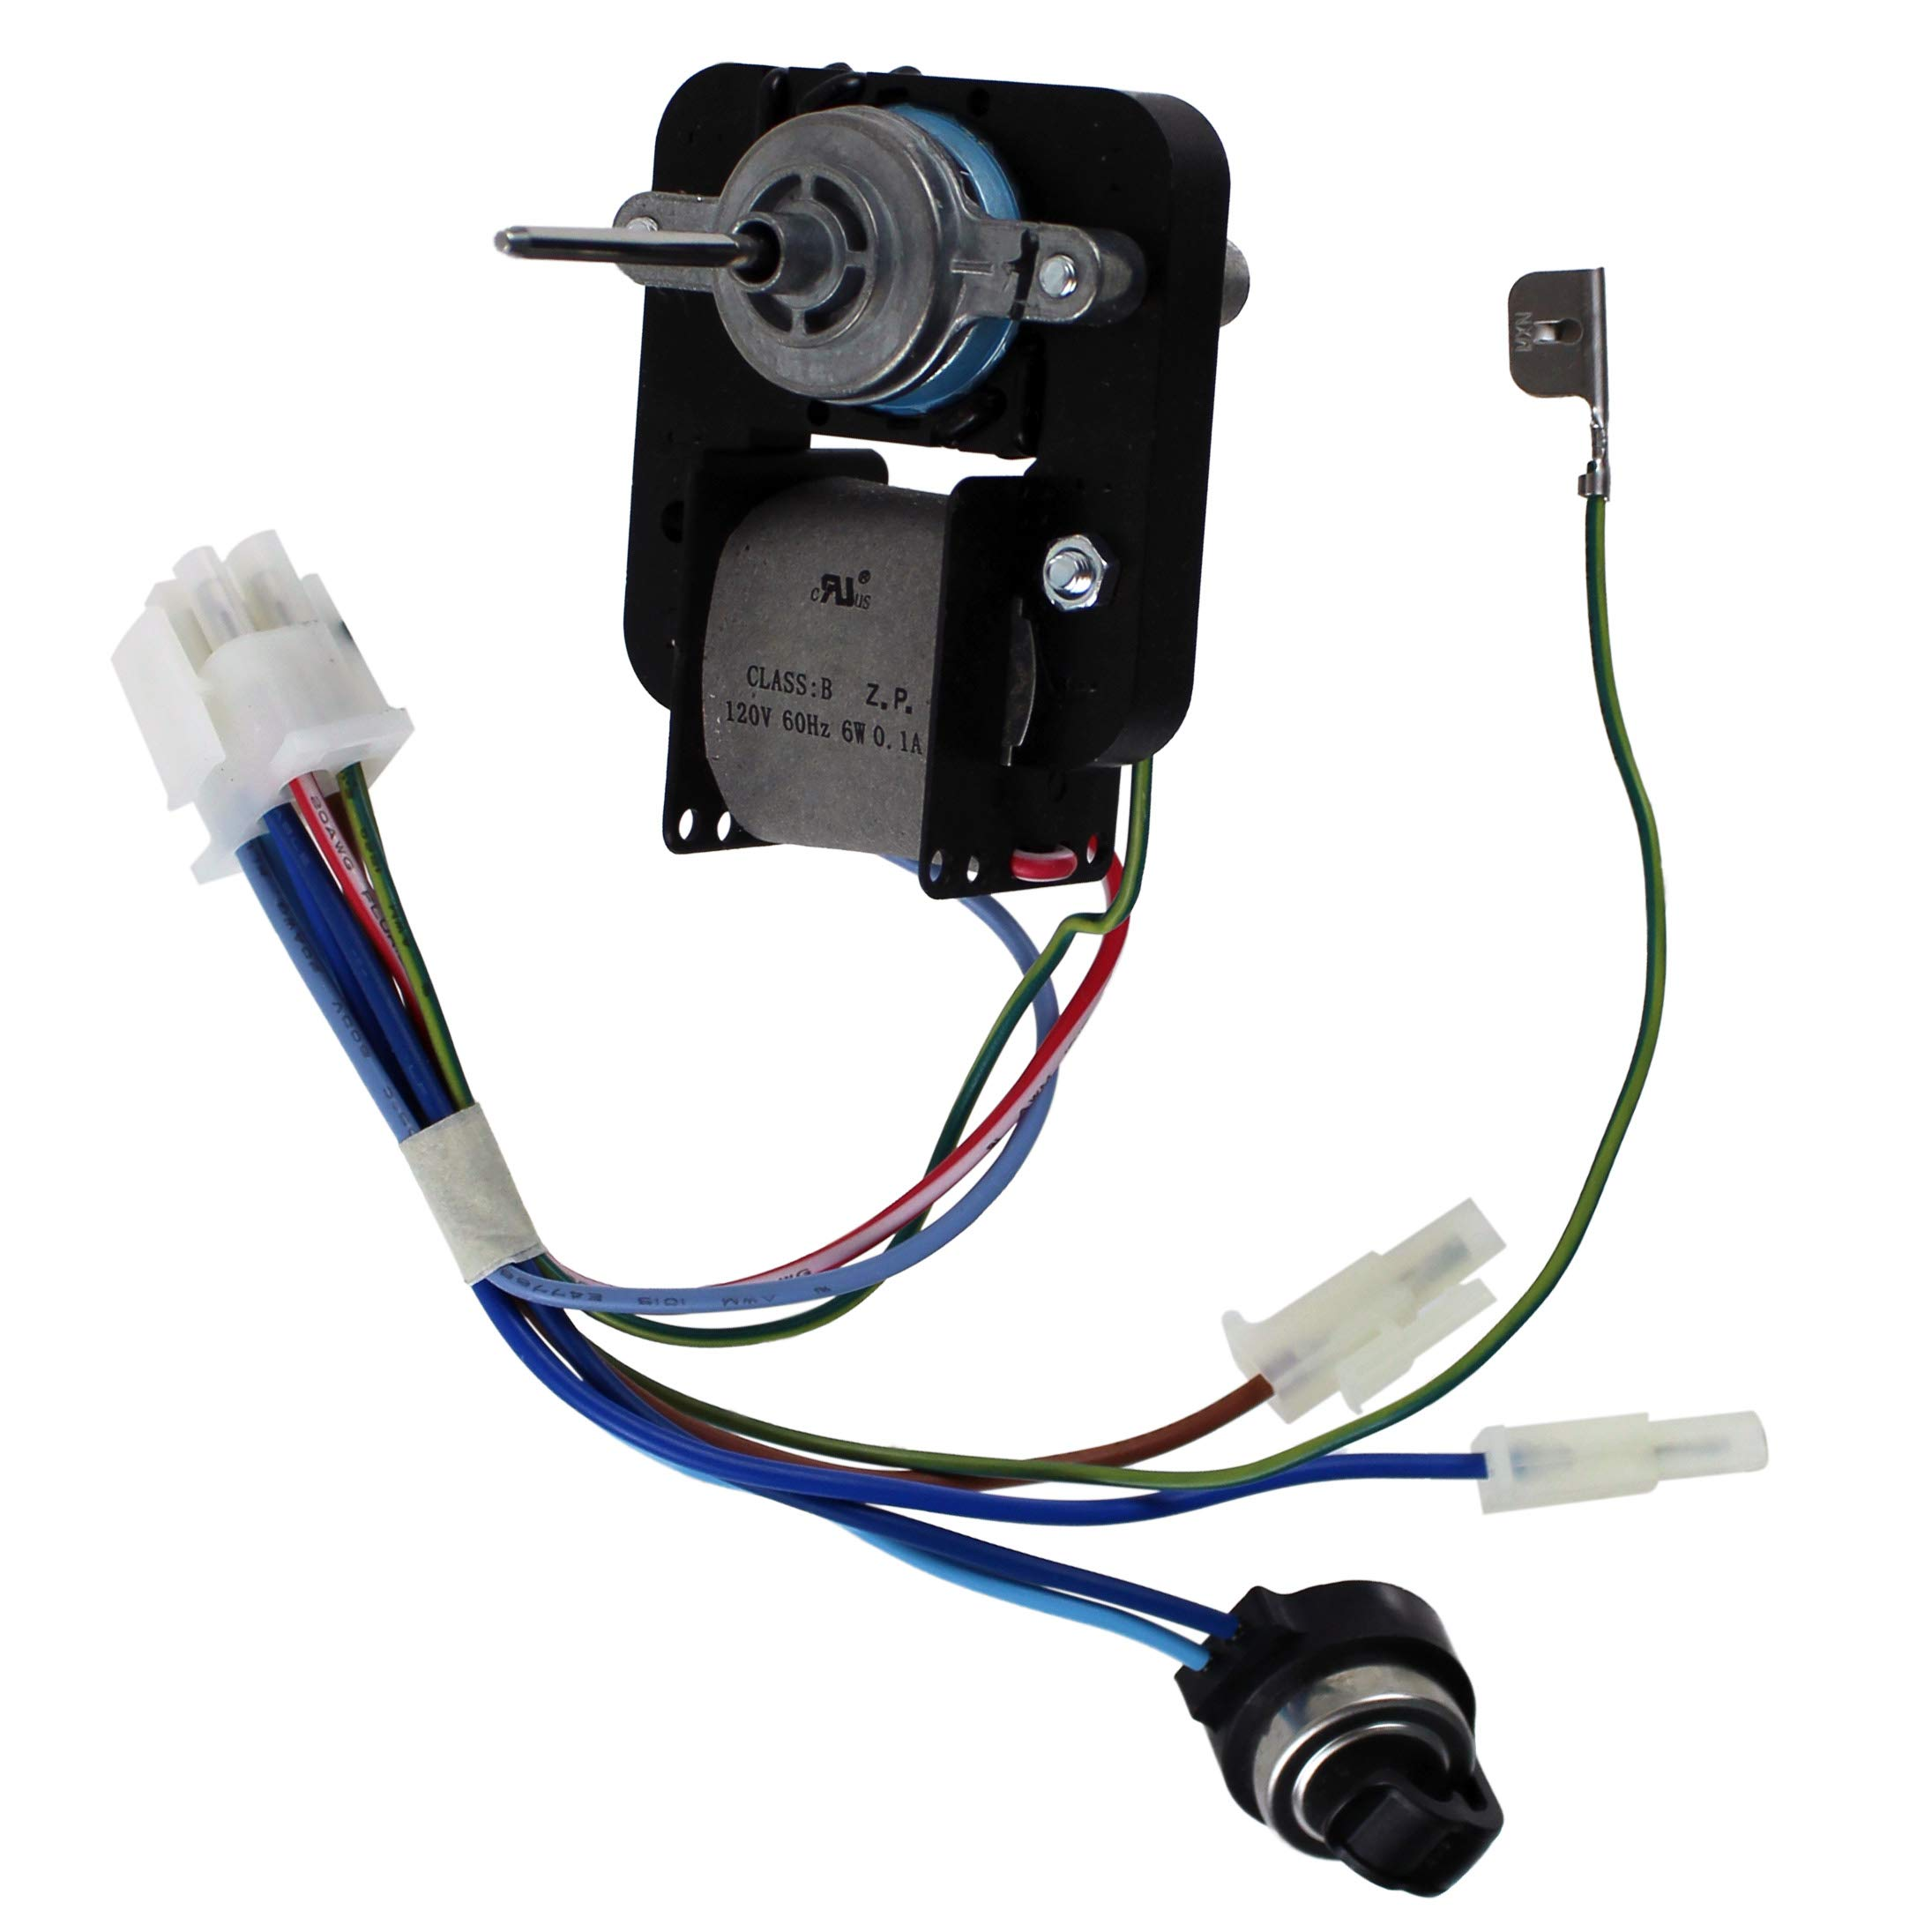 Supplying Demand 808602601 Refrigerator Evaporator Fan Motor Compatible With Frigidaire Fits 241854601, PS11726595 by Supplying Demand